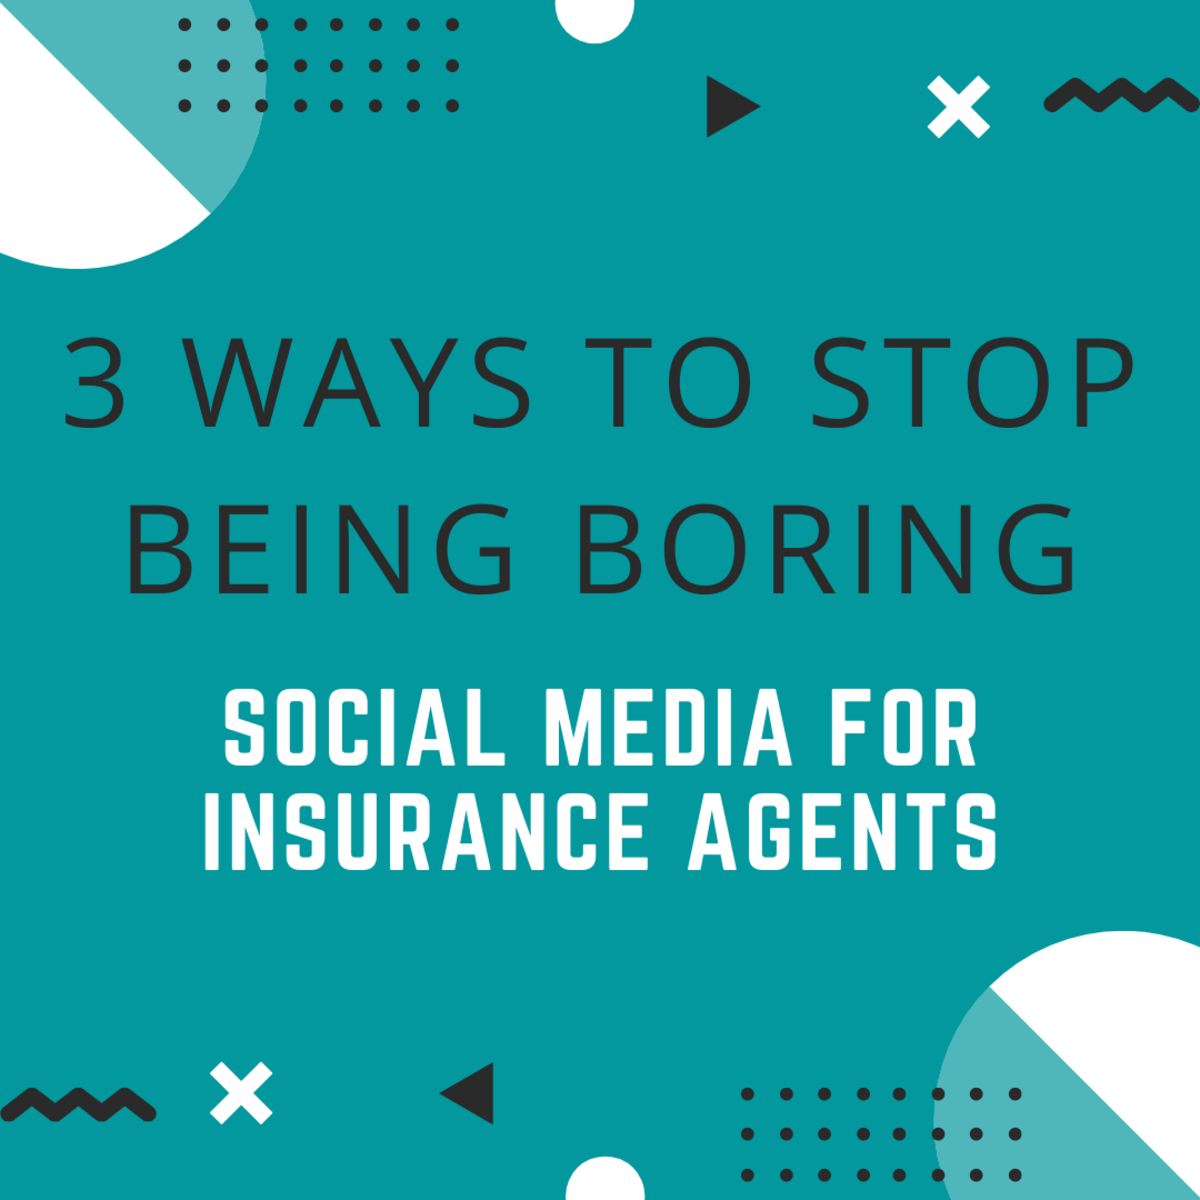 3 Ways to Stop Being Boring: Social Media for Insurance Agents